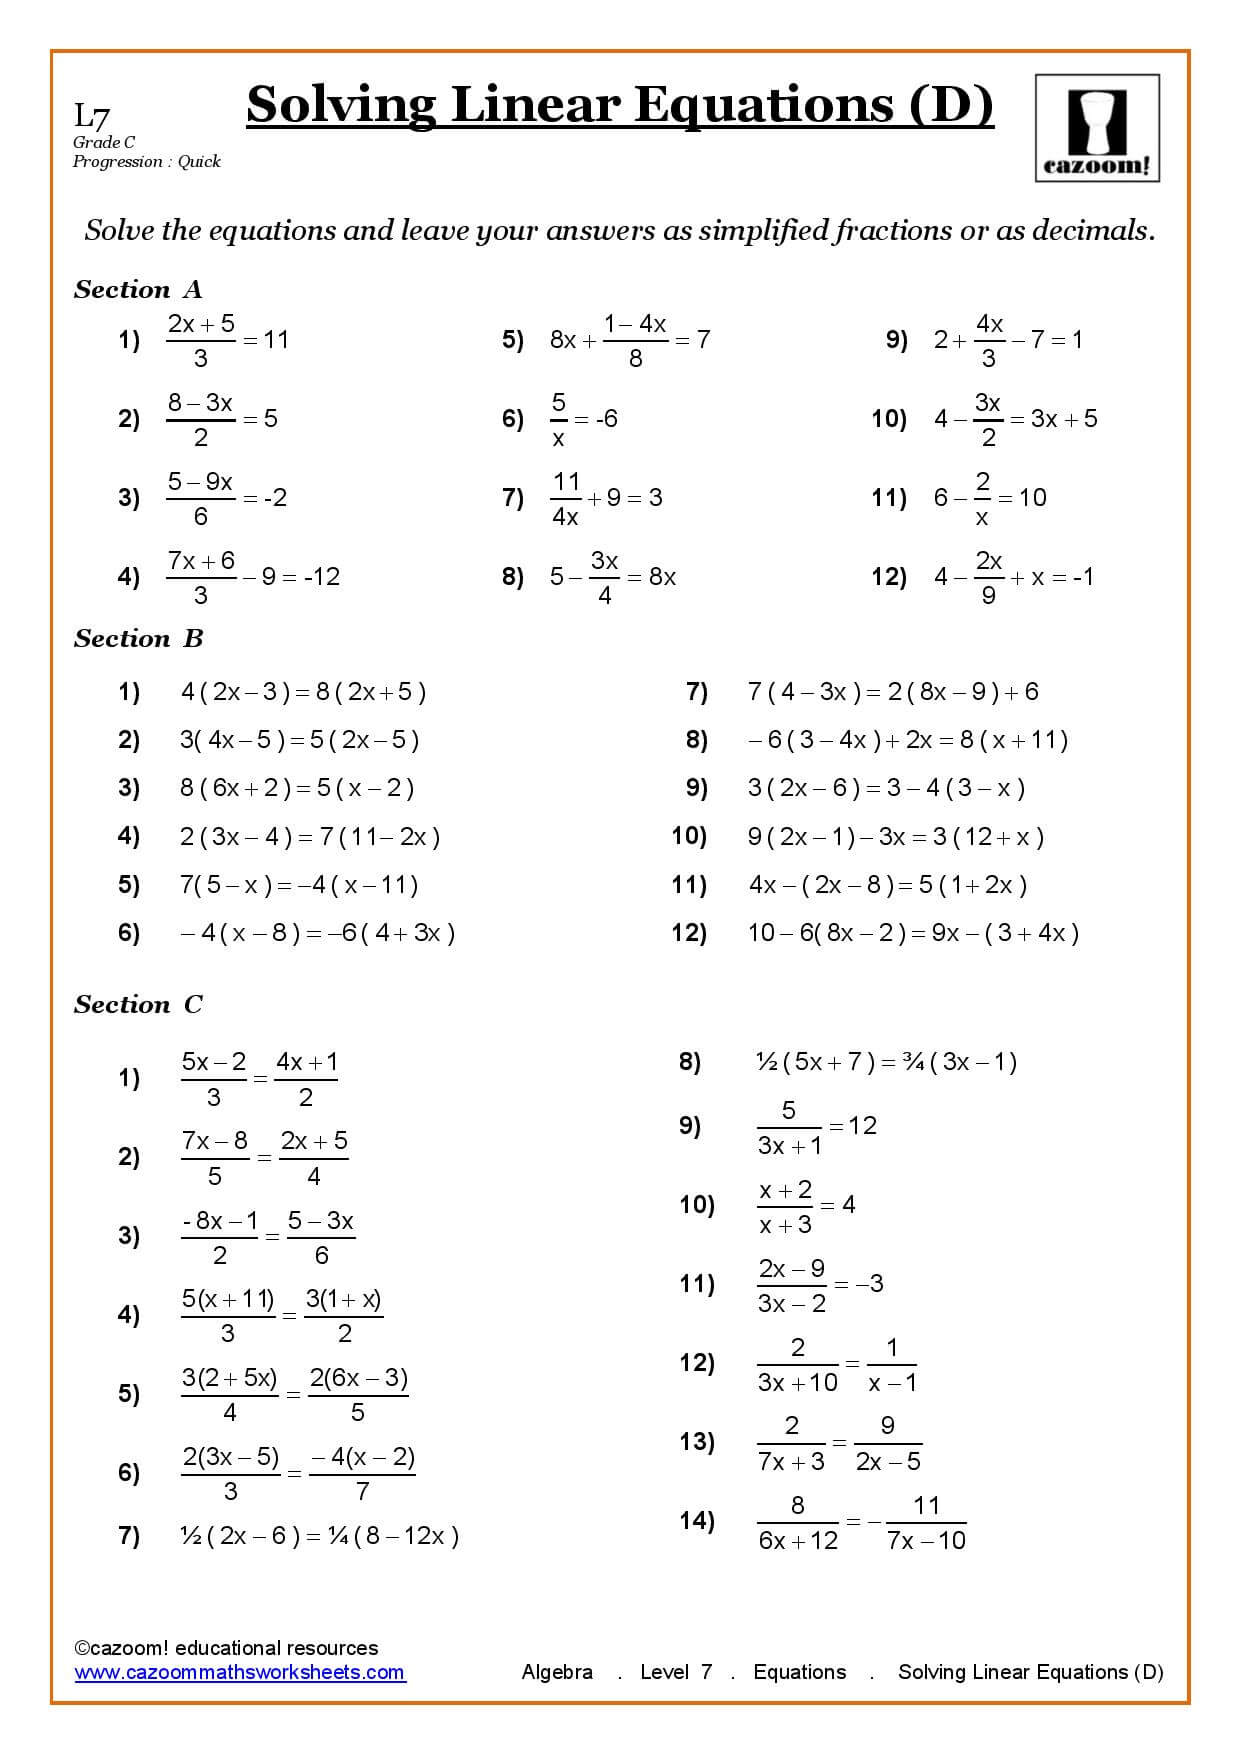 Solving Linear Equations Hangman Worksheet Answers Solving